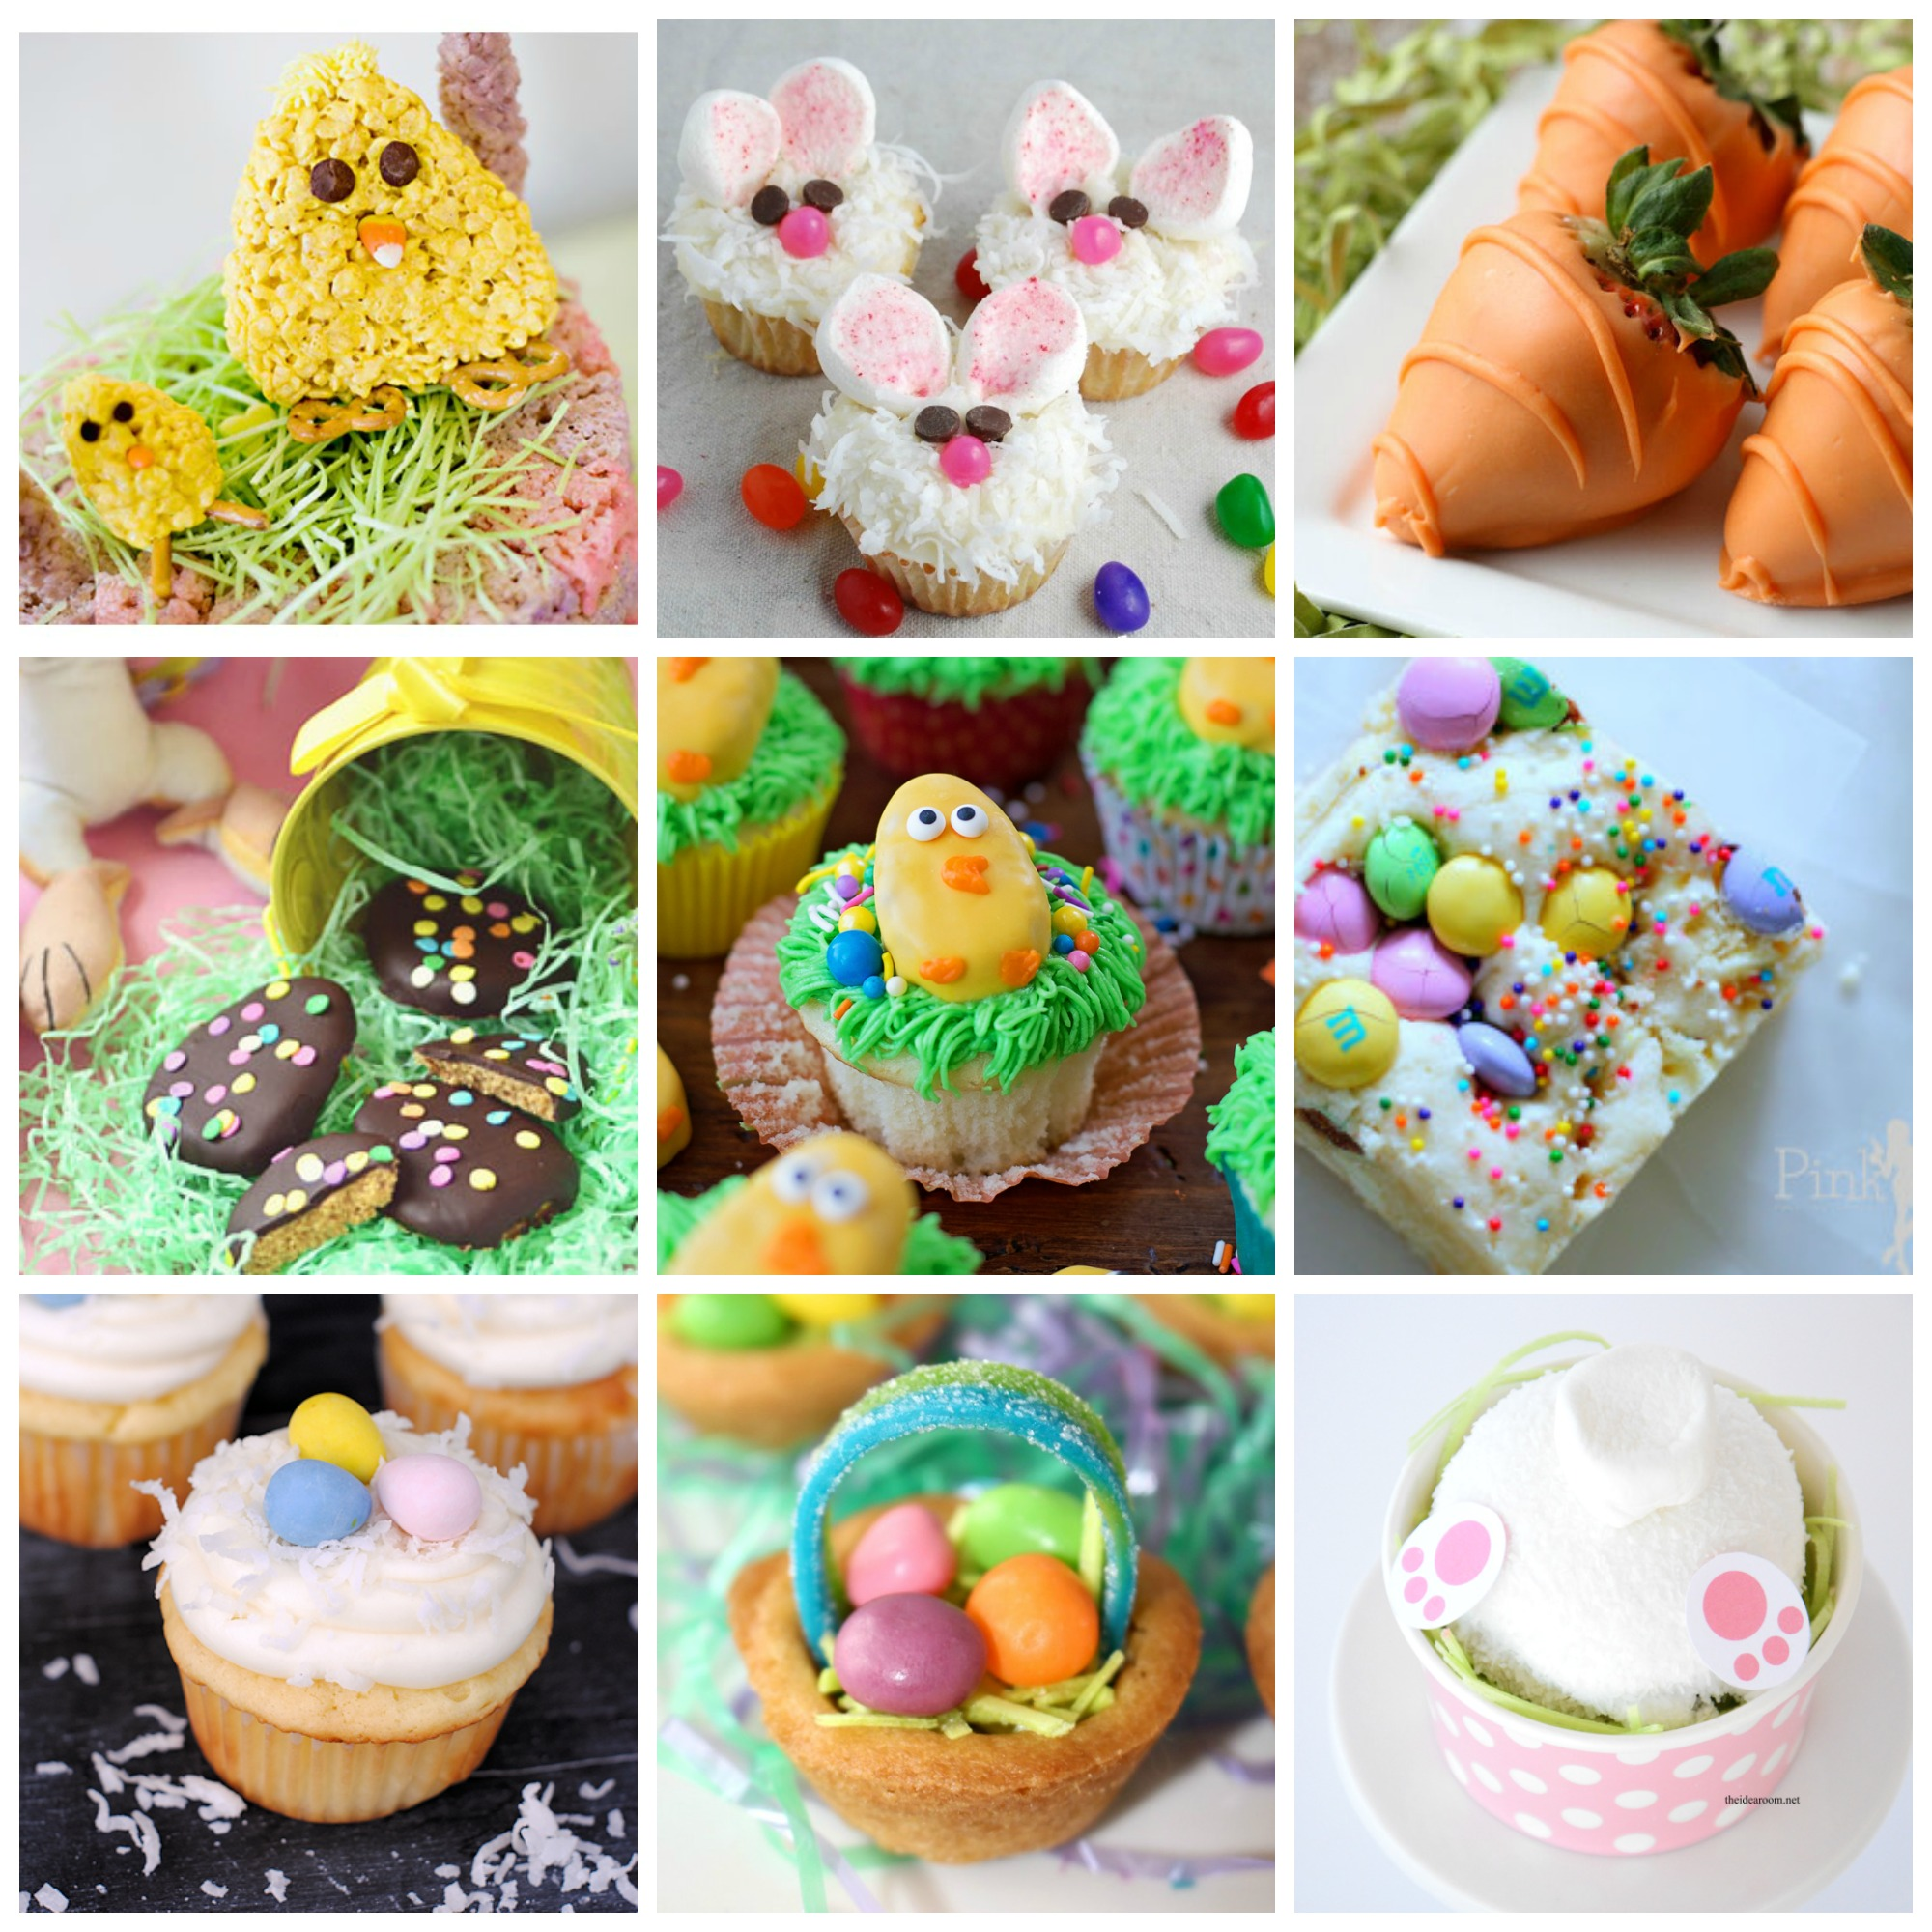 Make these Easter desserts to top off your meal this holiday! Great ideas that are simple to make!